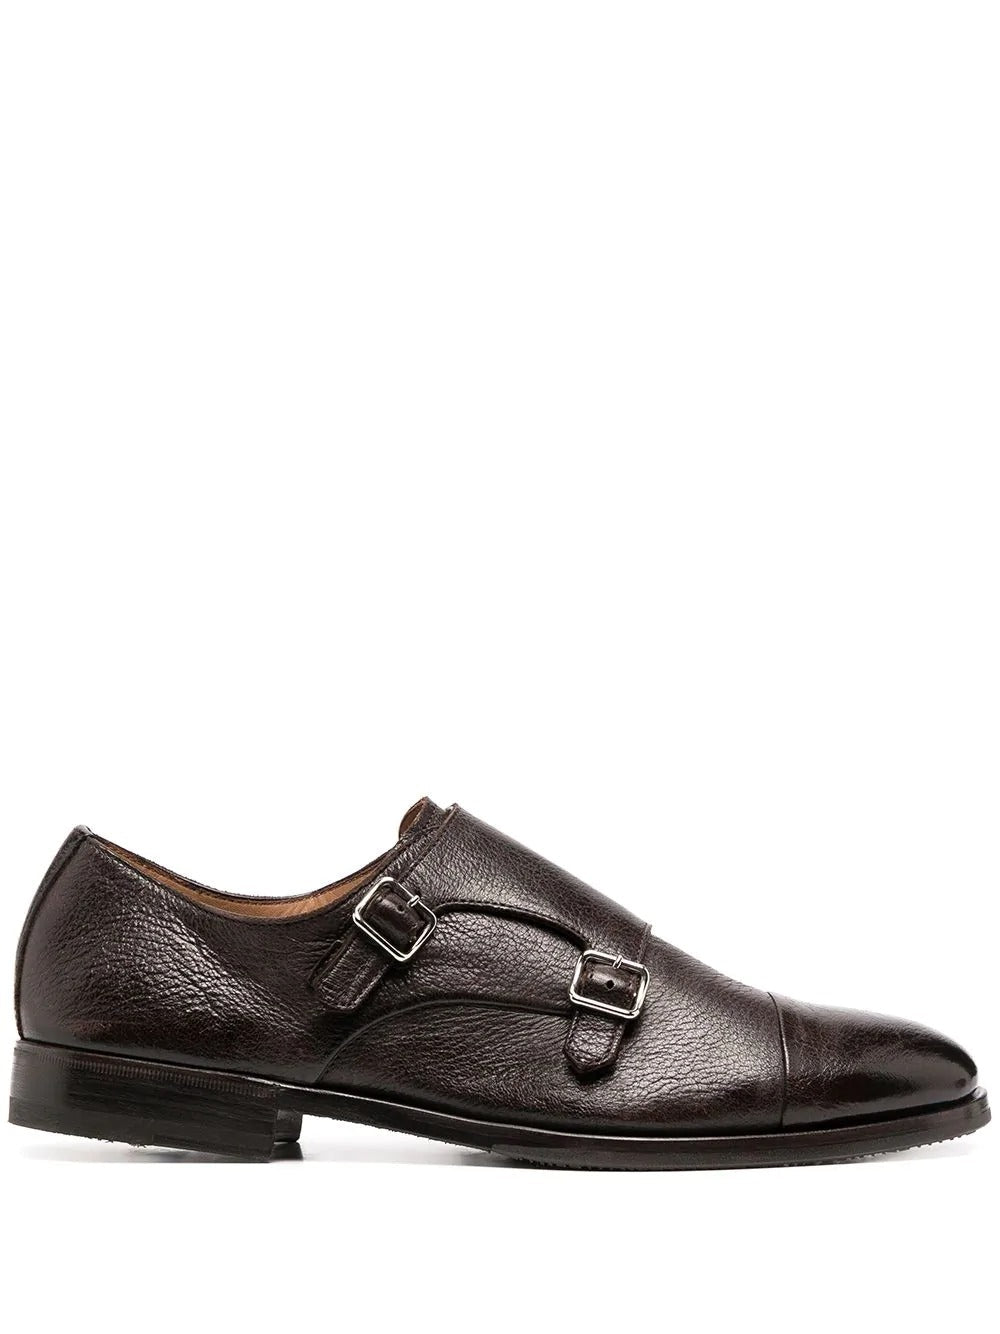 HENDERSON MONK SHOES